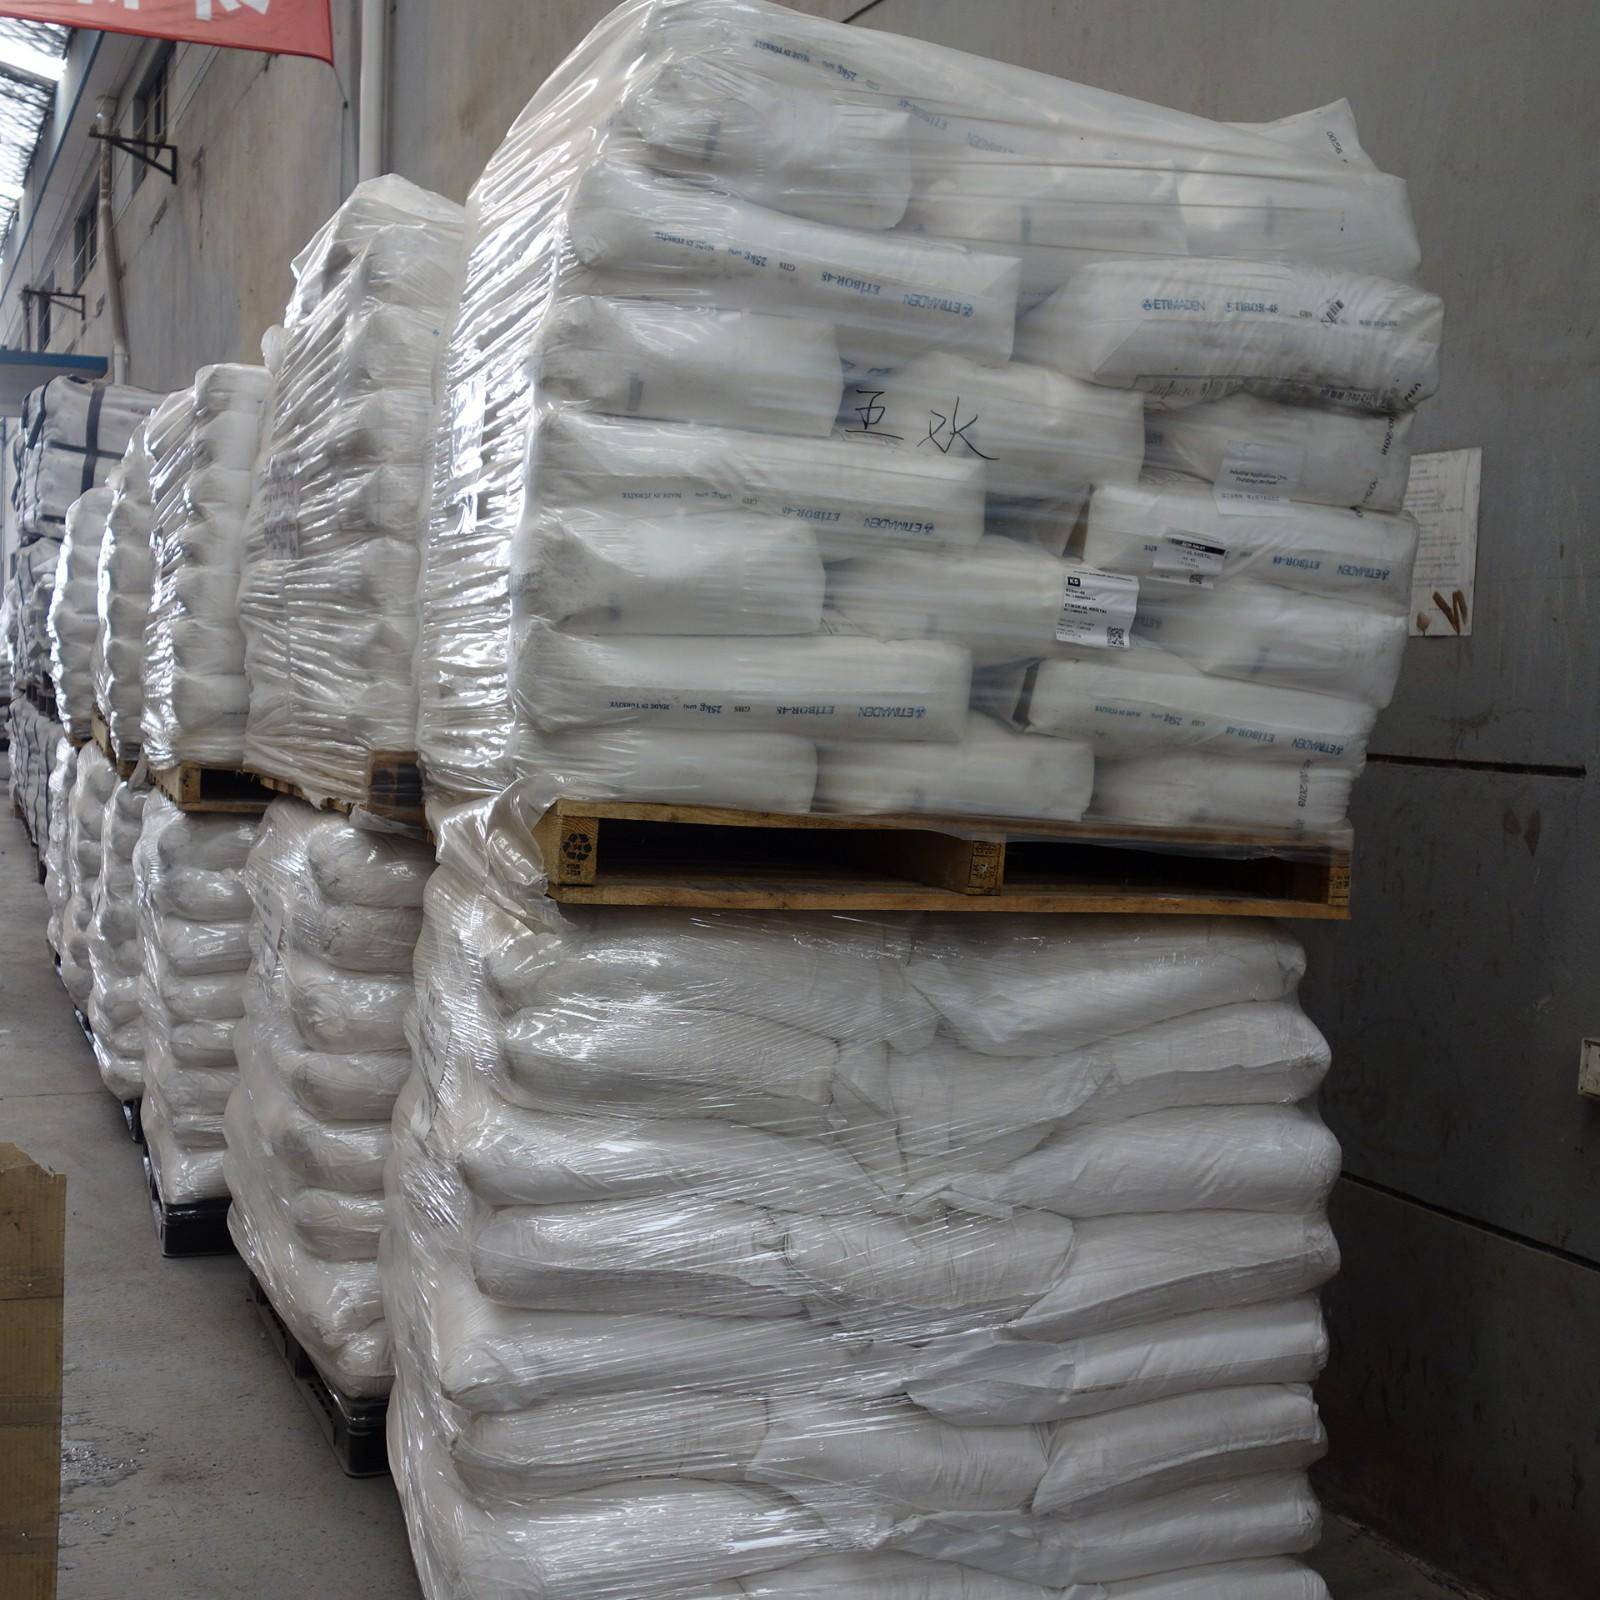 Yixin borax powder cost factory for Daily necessities